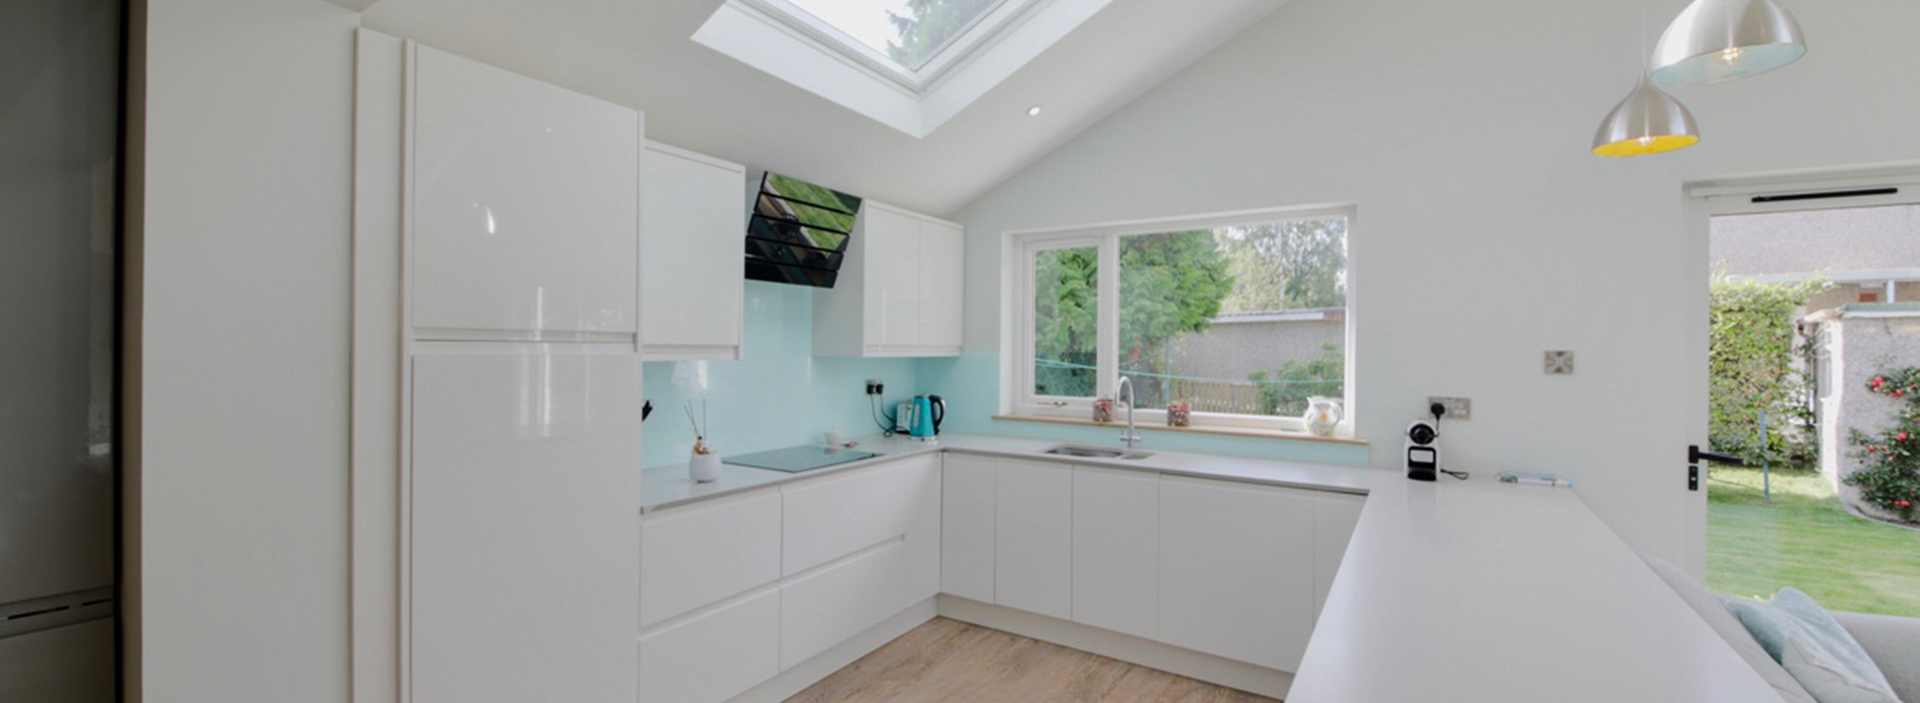 kitchen renovation edinburgh